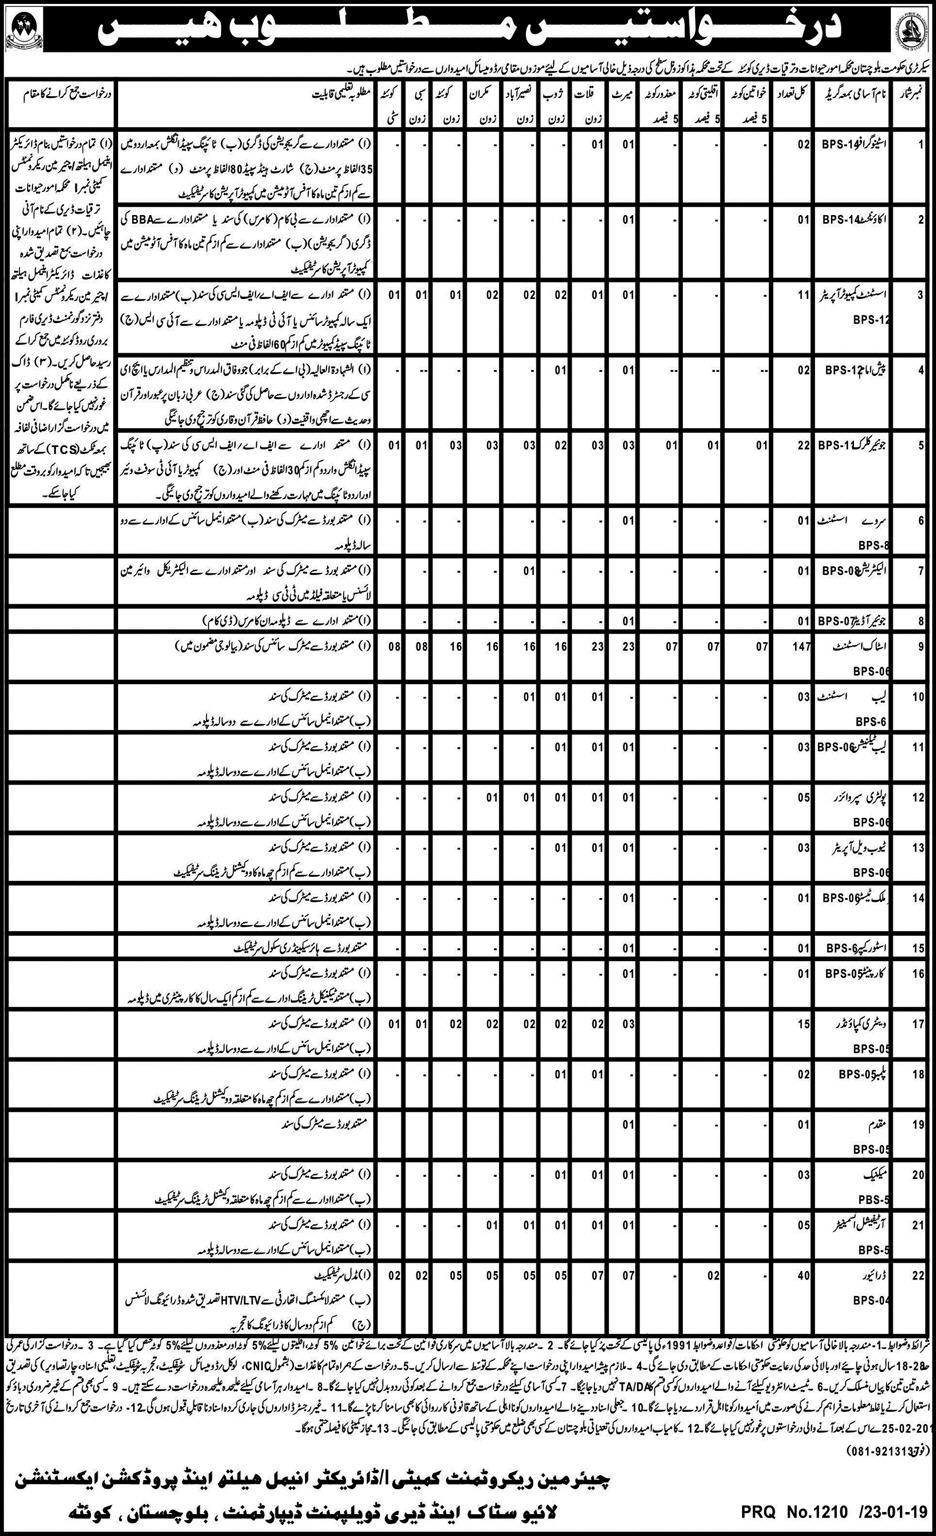 Jobs Vacancies In Livestock And Dairy Development Department 24 January 2019